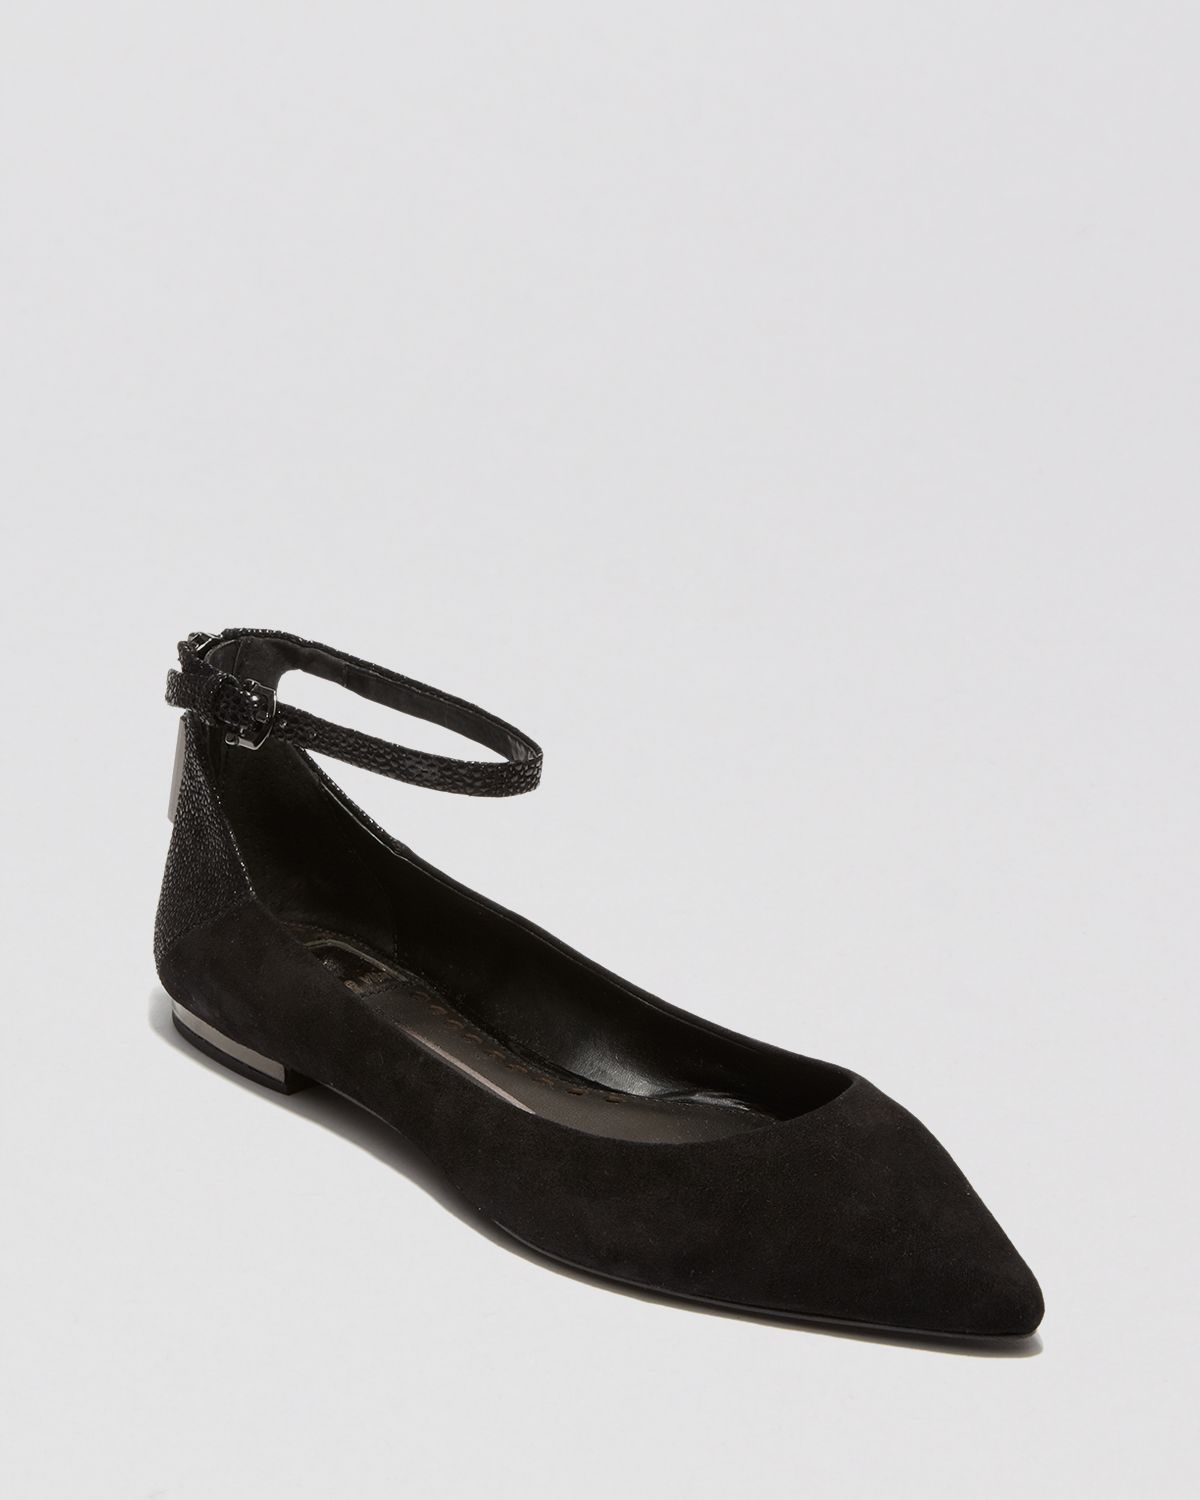 187cea63816 Dolce Vita Pointed Toe Flats Angie Ankle Strap in Black - Lyst